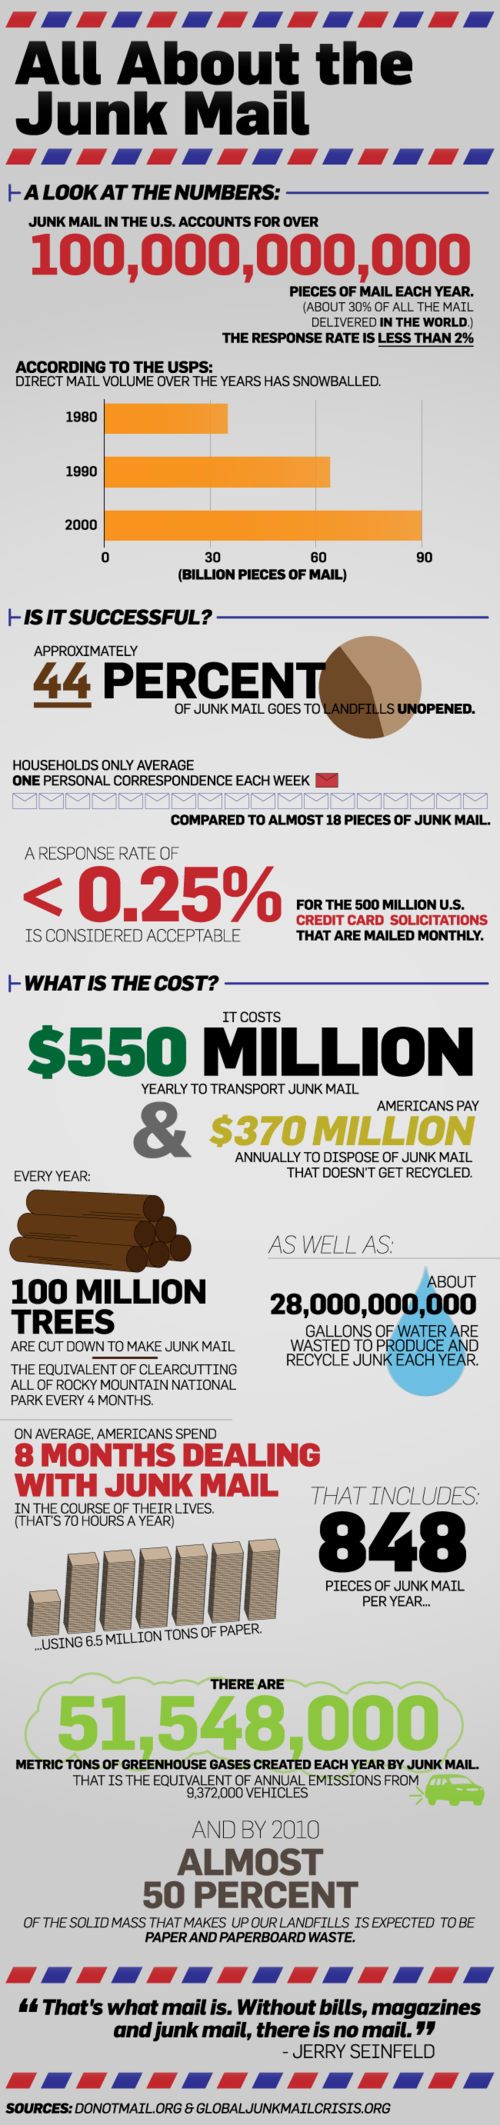 Infographic on junk mail